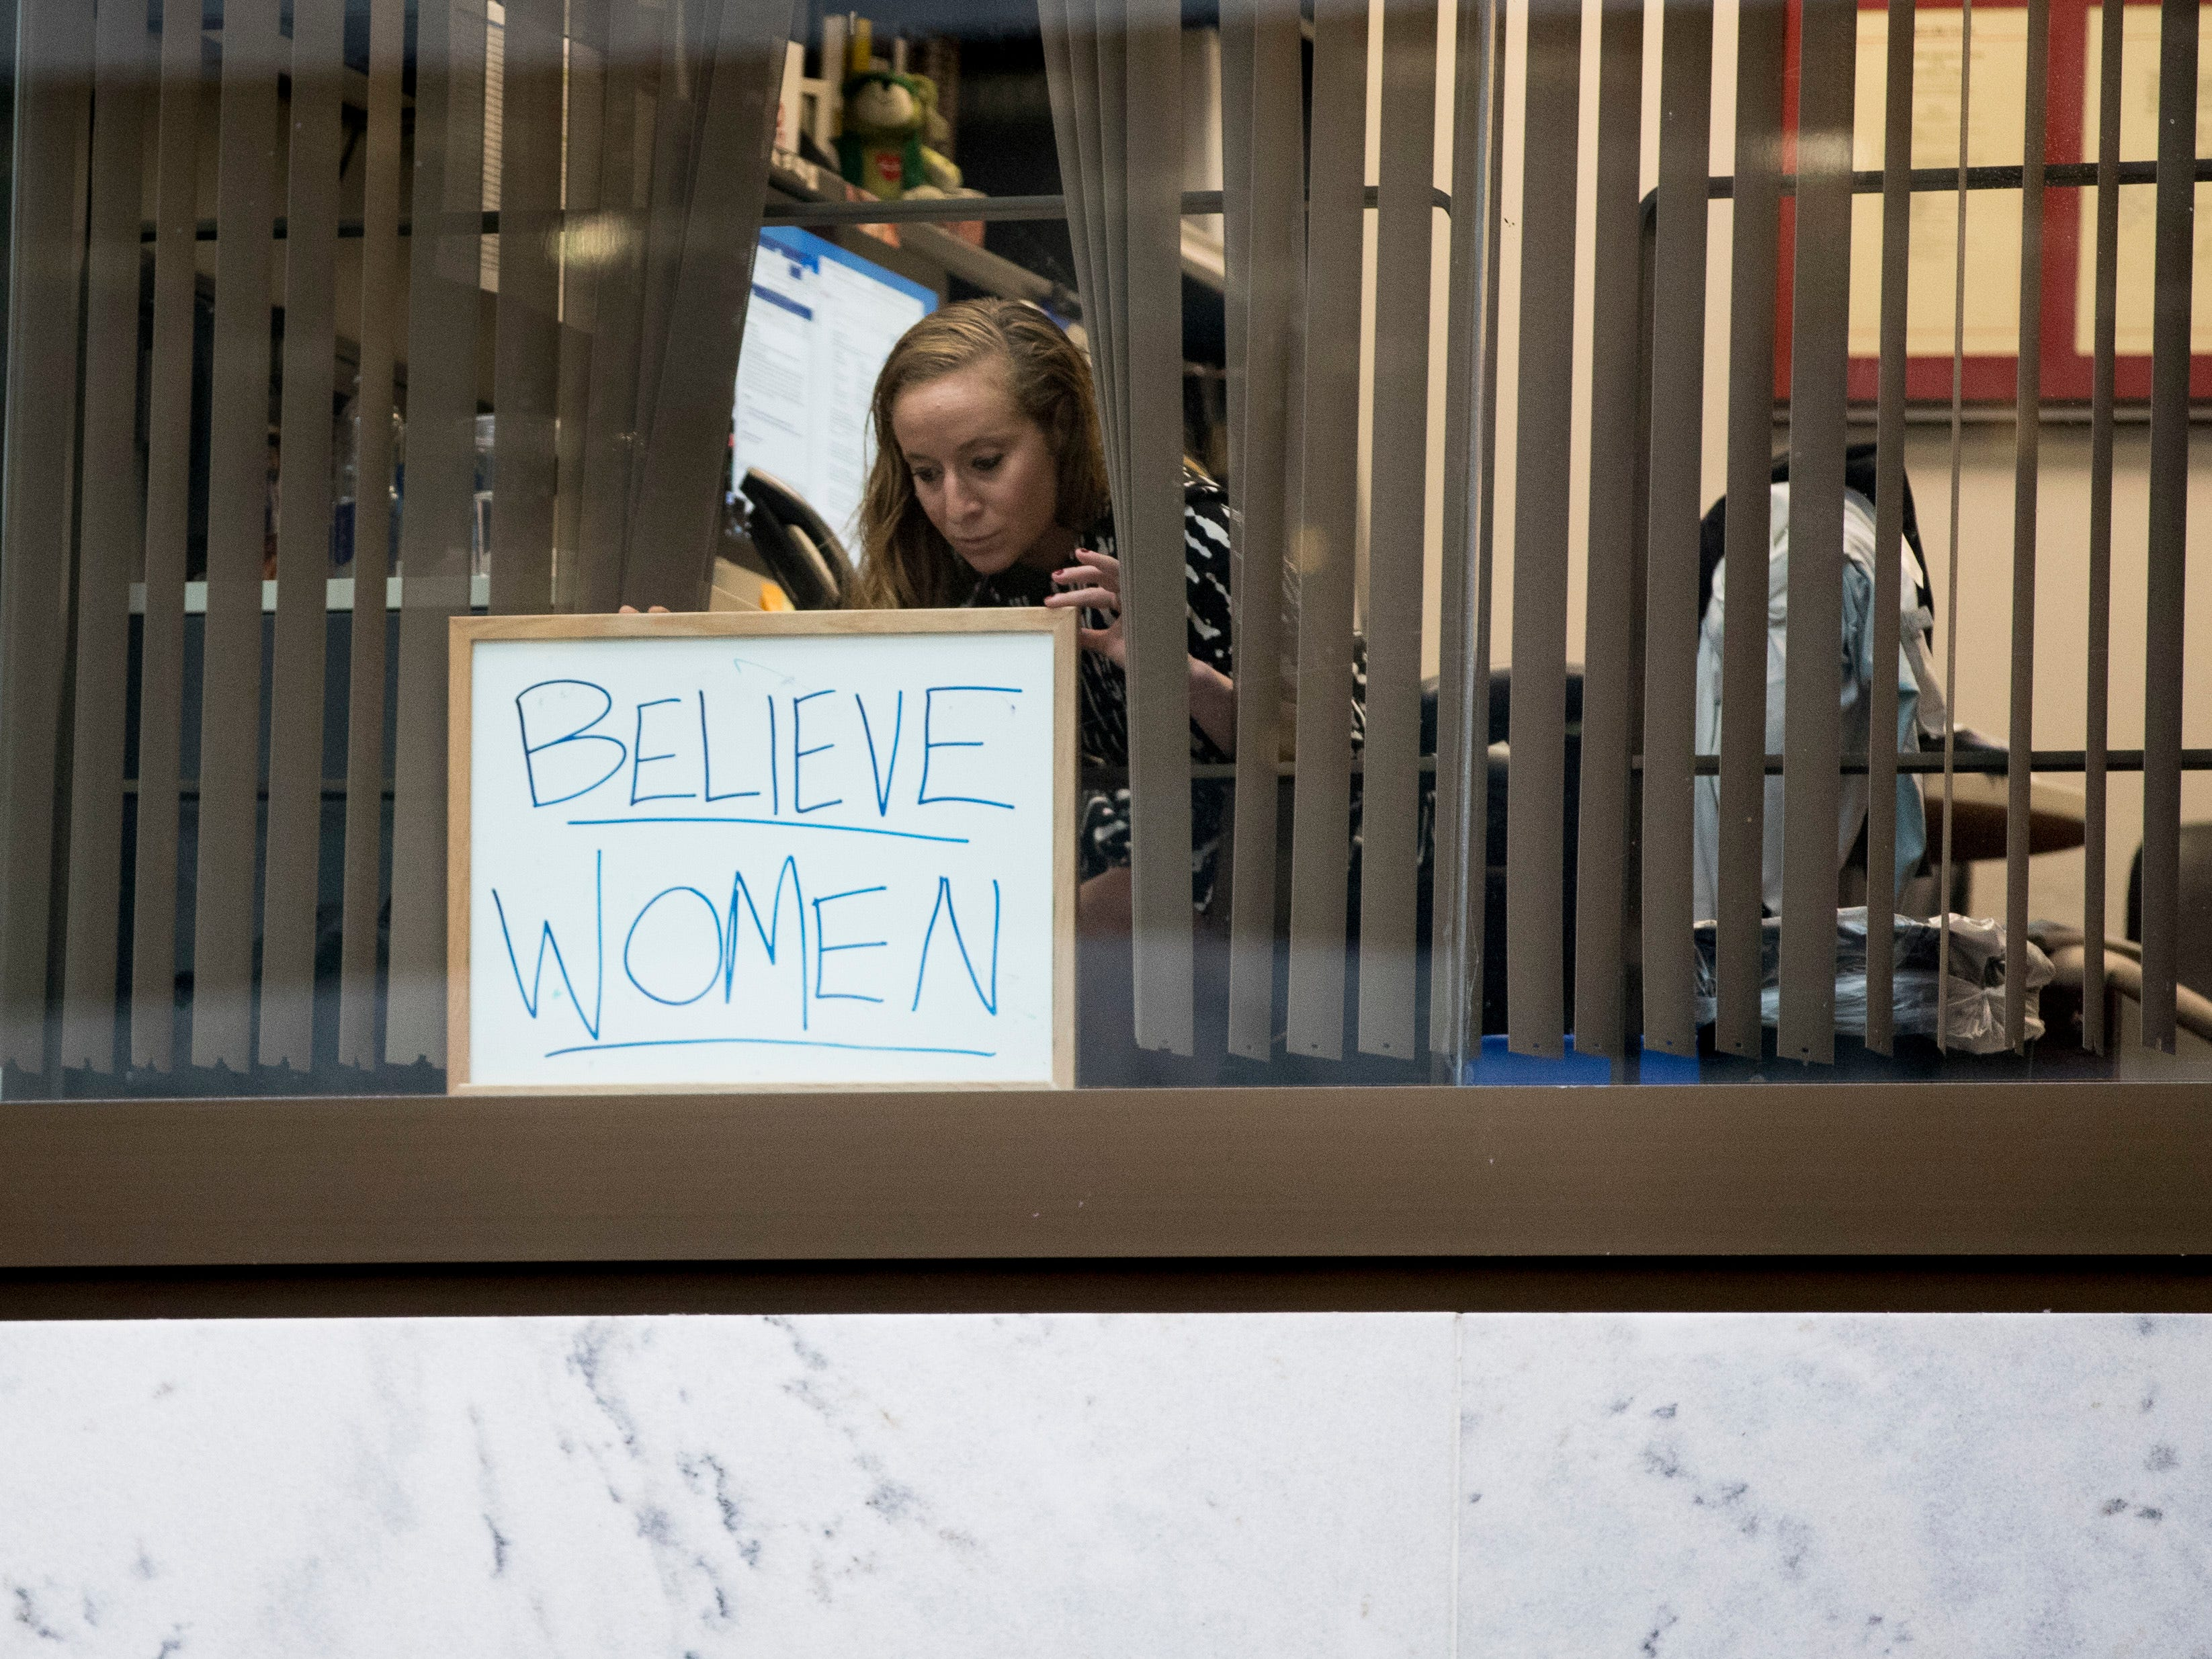 "A Capitol Hill staff member puts up a sign that reads ""Believe Women"" as she looks out her office window at a group of protesters against Supreme Court nominee Brett Kavanaugh that gathers on Capitol Hill in Washington, Monday, Sept. 24, 2018, as the Senate begins a week of scrutiny of President Donald Trump's nominee to the high court. Judge Brett Kavanaugh's nomination to the U.S. Supreme Court has been further imperiled by a second sexual-misconduct allegation, dating to his first year at Yale University. (AP Photo/Andrew Harnik) ORG XMIT: DCAH107"